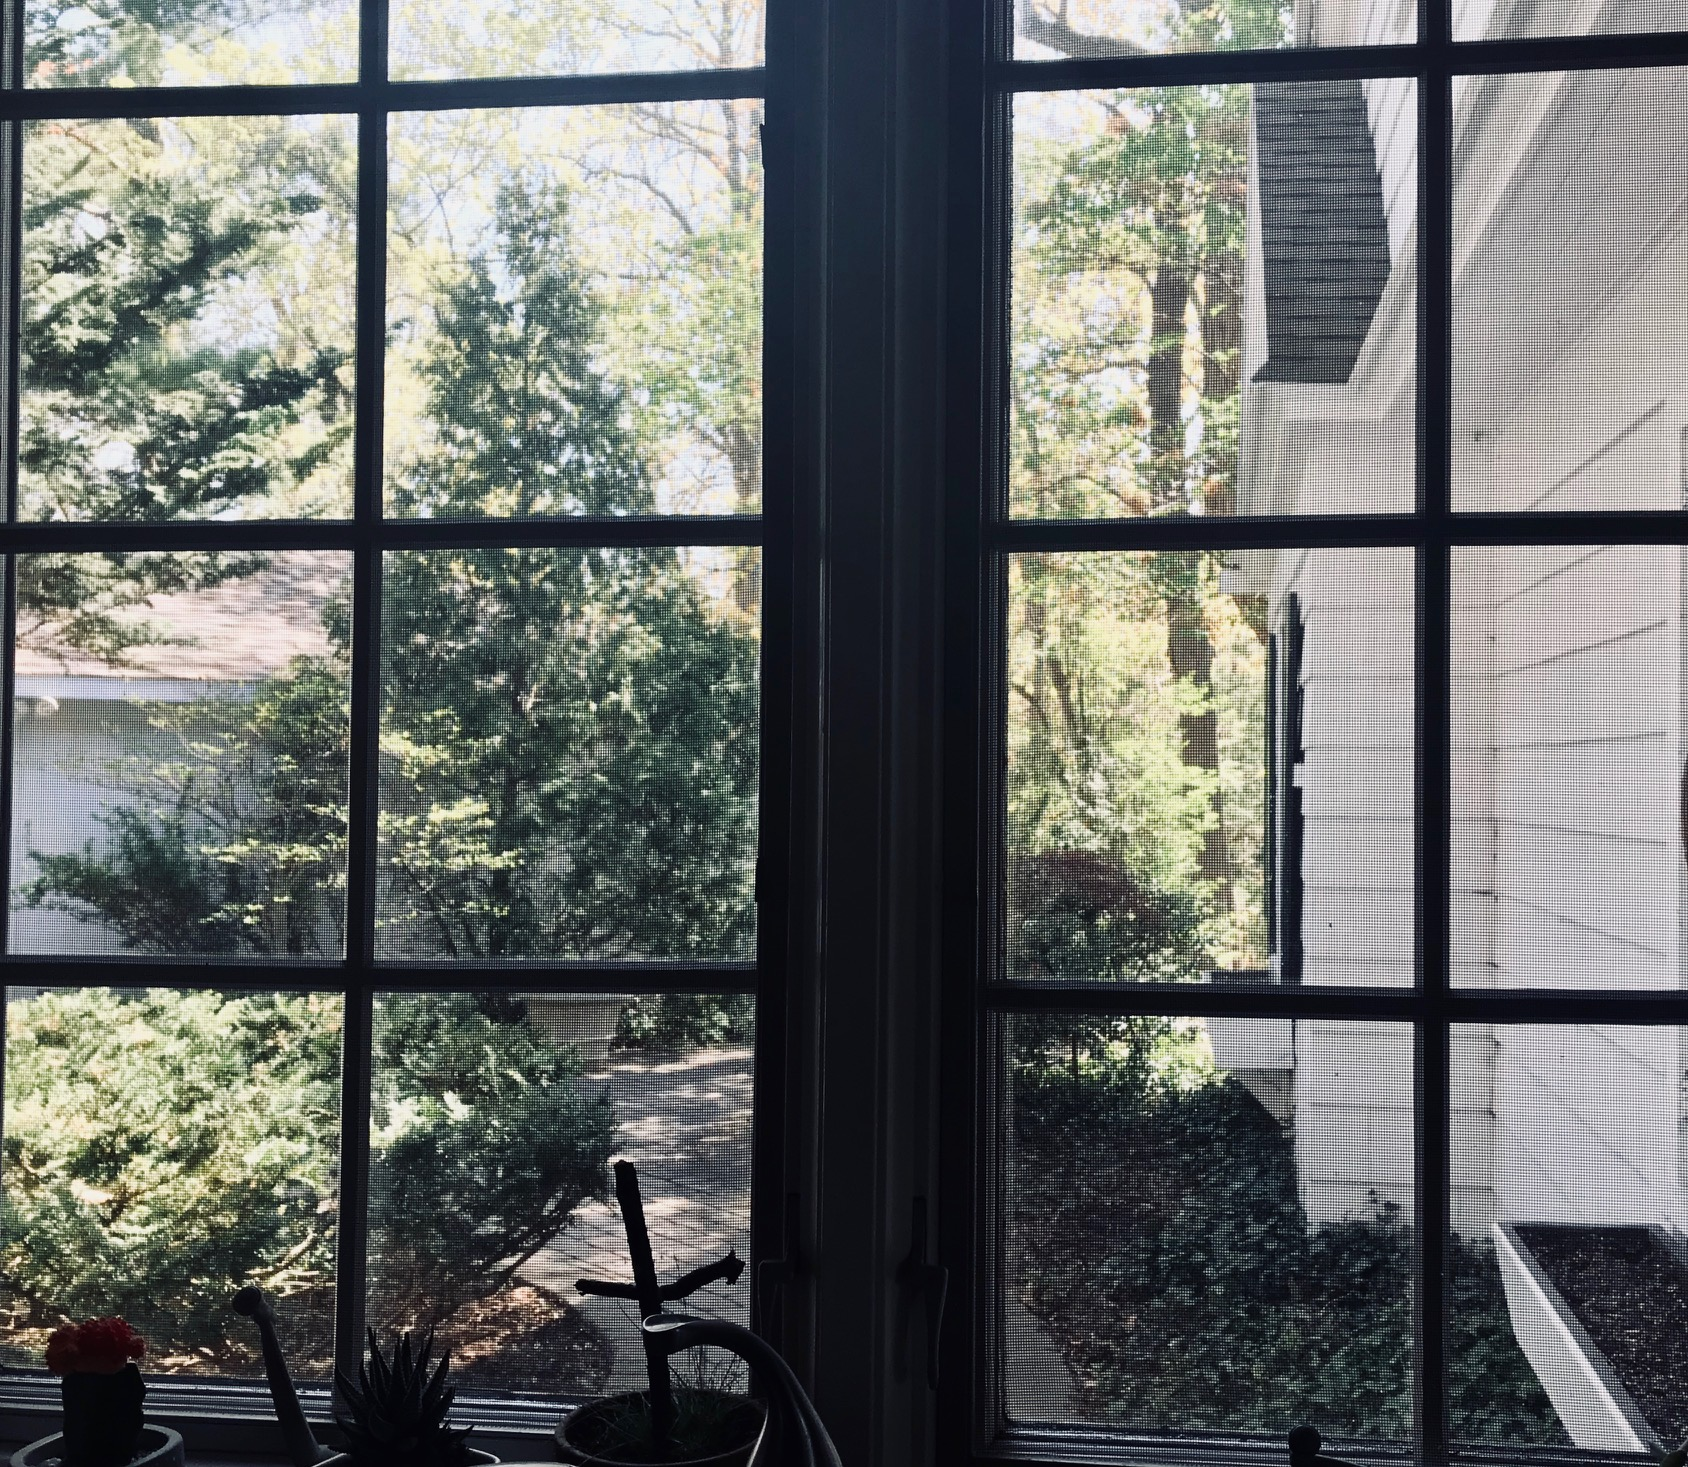 VIEWS OF NATURE FROM EVERY WINDOW